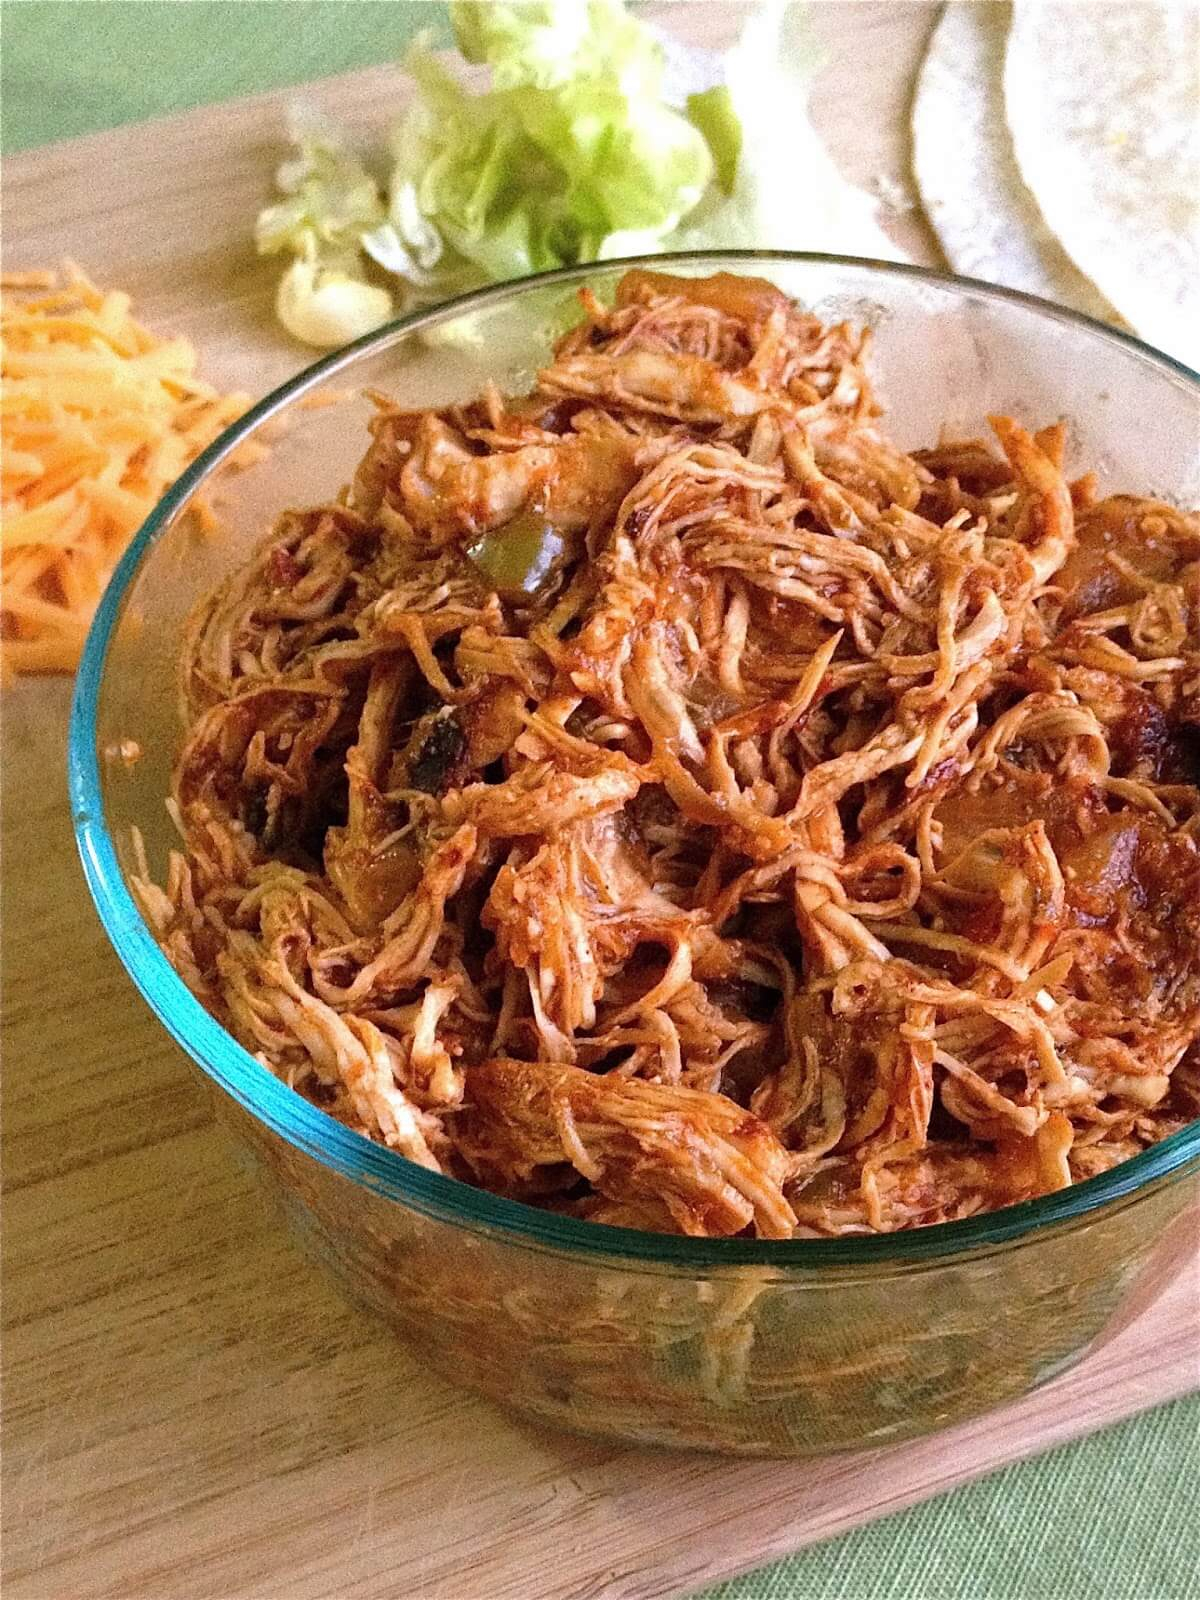 Shredded Chicken Recipes For Meals To Dinners Food